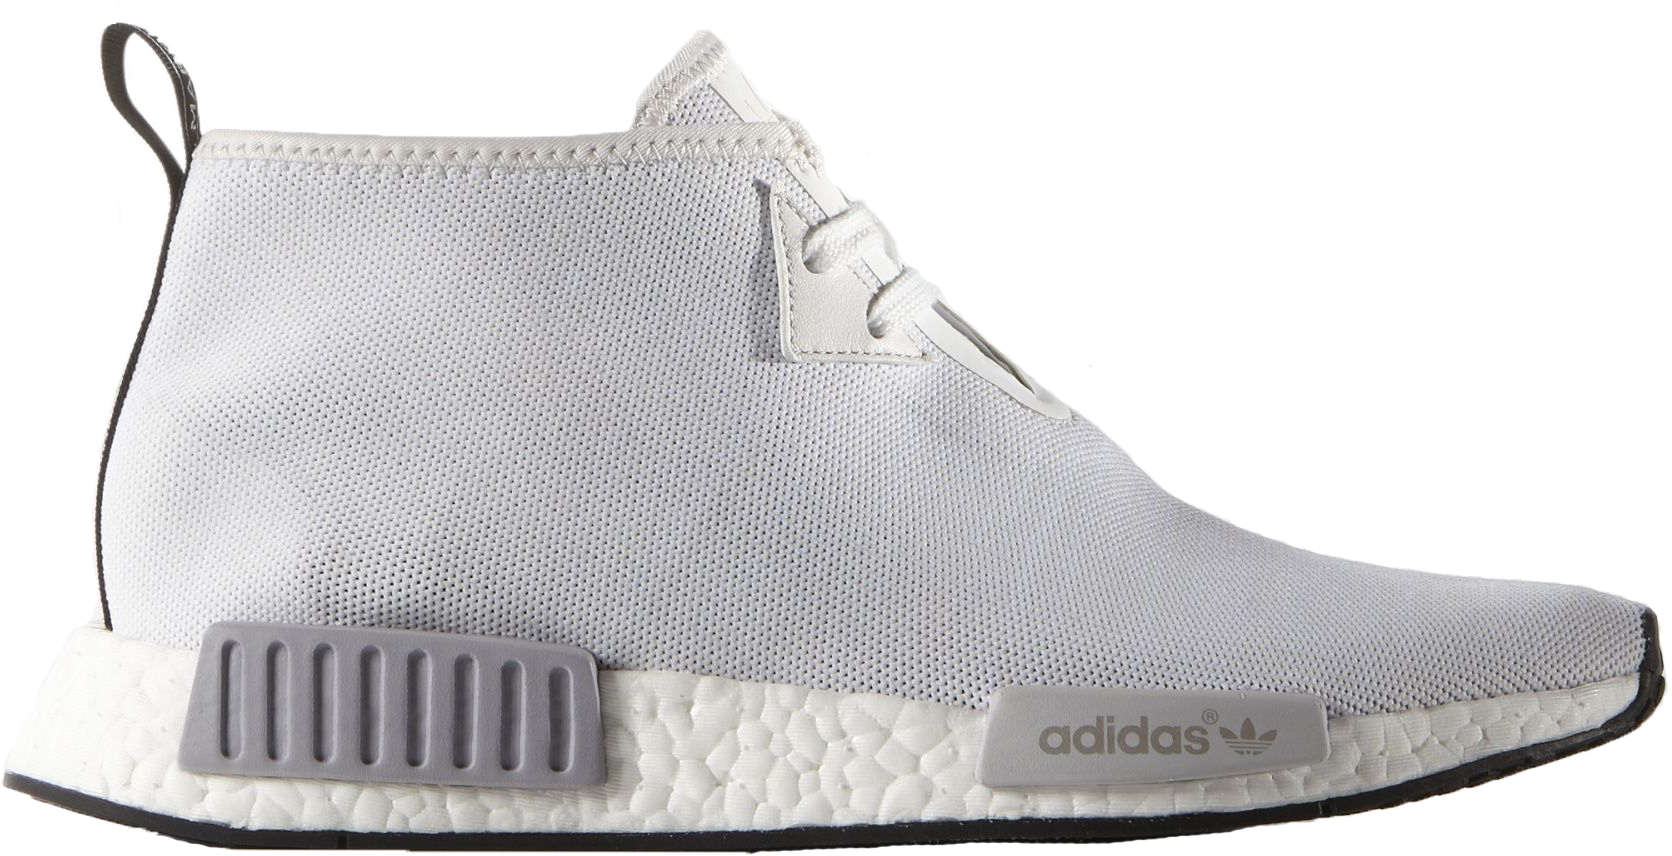 Size 5x. grid list. TOP. adidas NMD C1 Vintage White